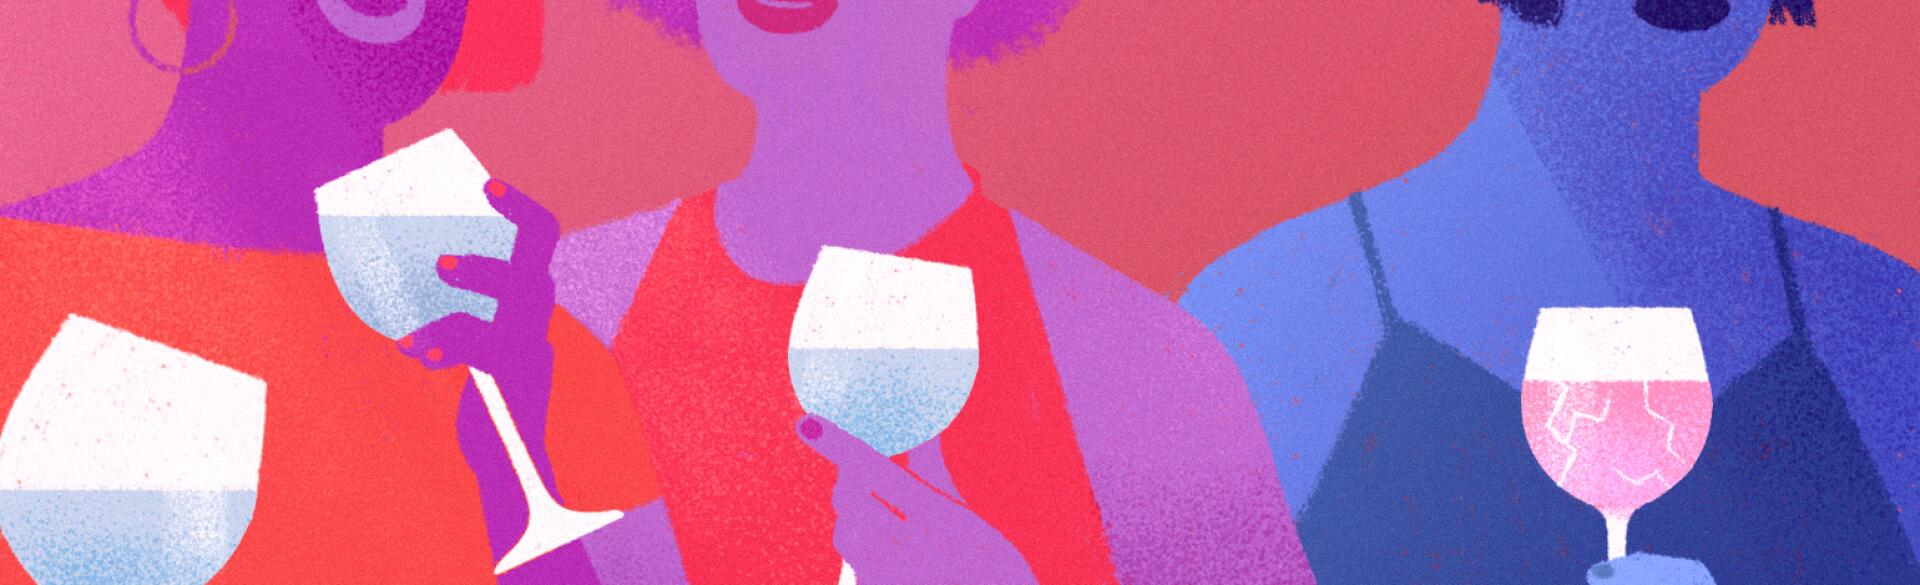 illustration of women with wine glasses in their hands